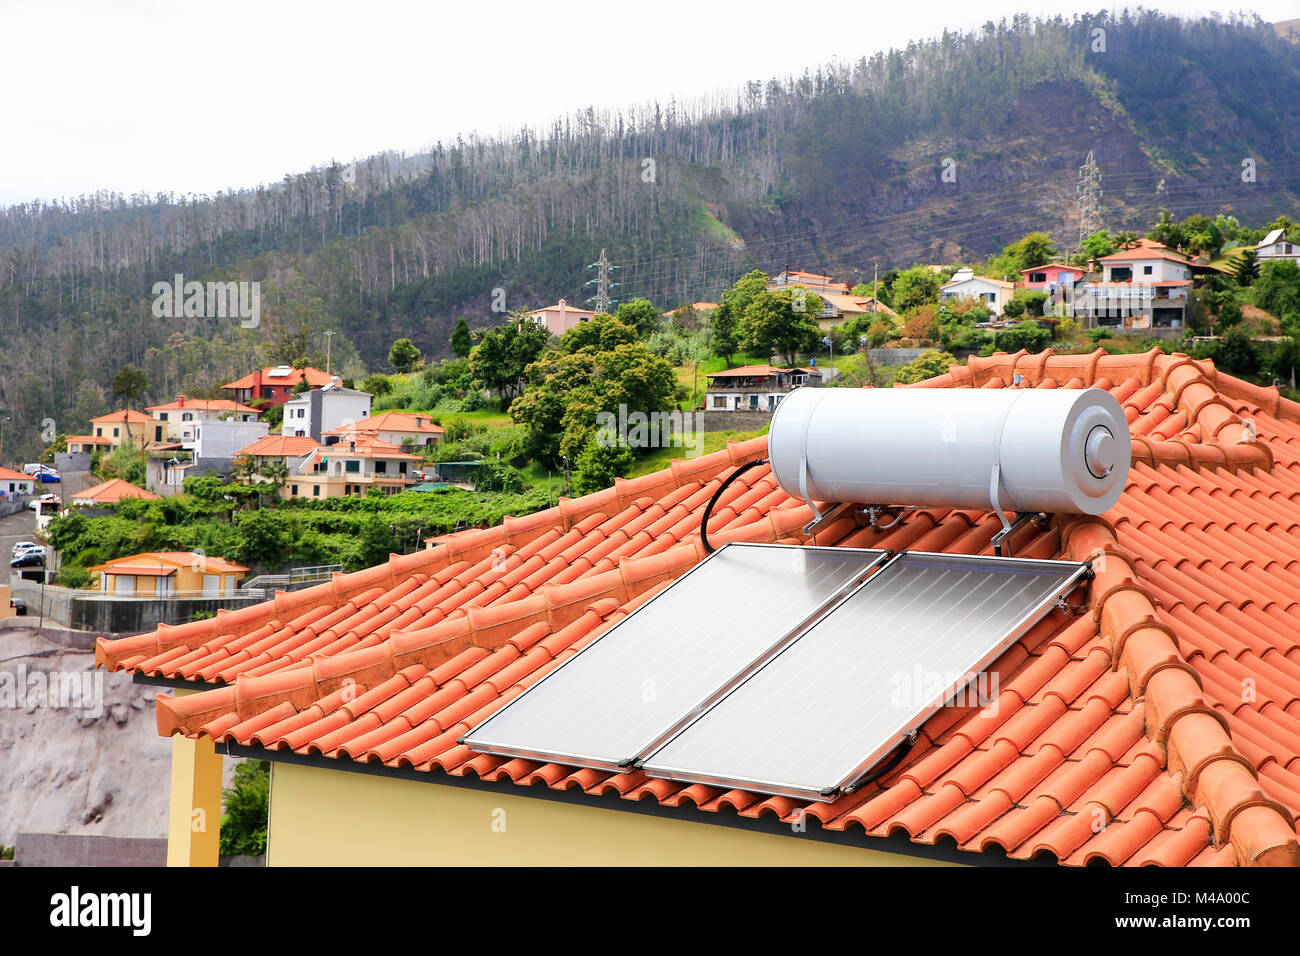 Water boiler with solar panels on roof of house - Stock Image